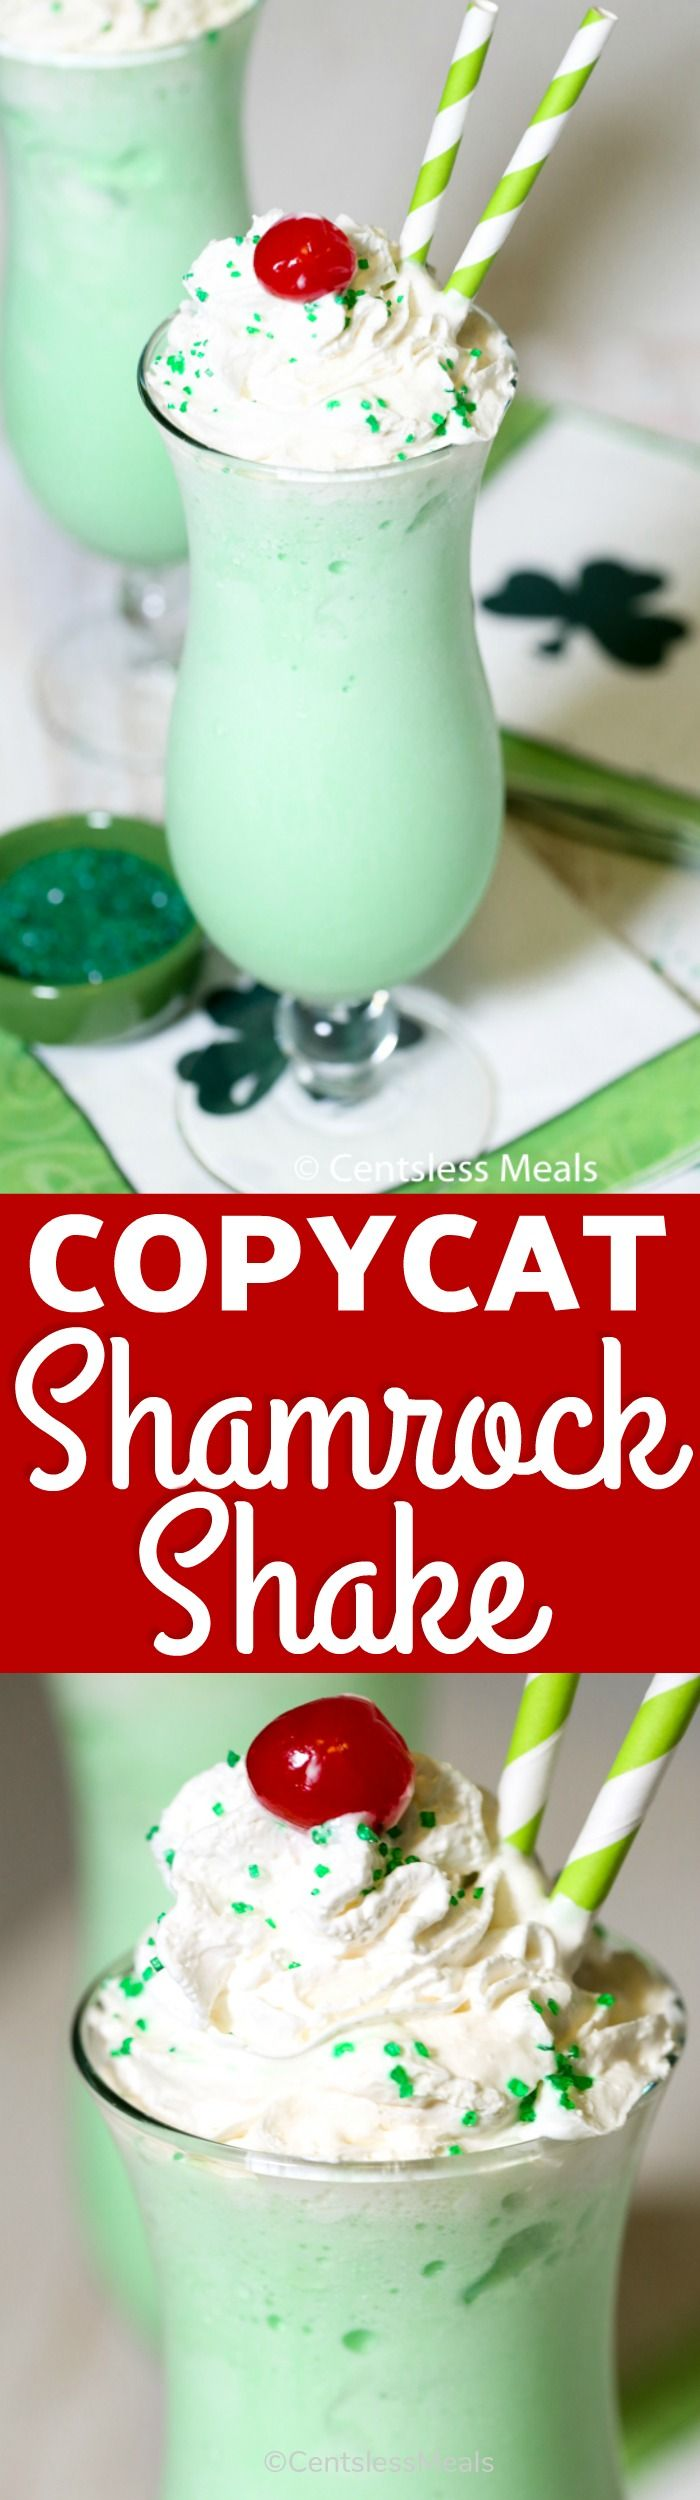 This creamy, minty, velvety smooth and cool treat is super popular, especially for St. Patrick's Day! I admit though that I love to indulge any time of the year! #centslessmeals #milkshake #mint #stpatricksday #cooltreat #easyrecipe #copycat